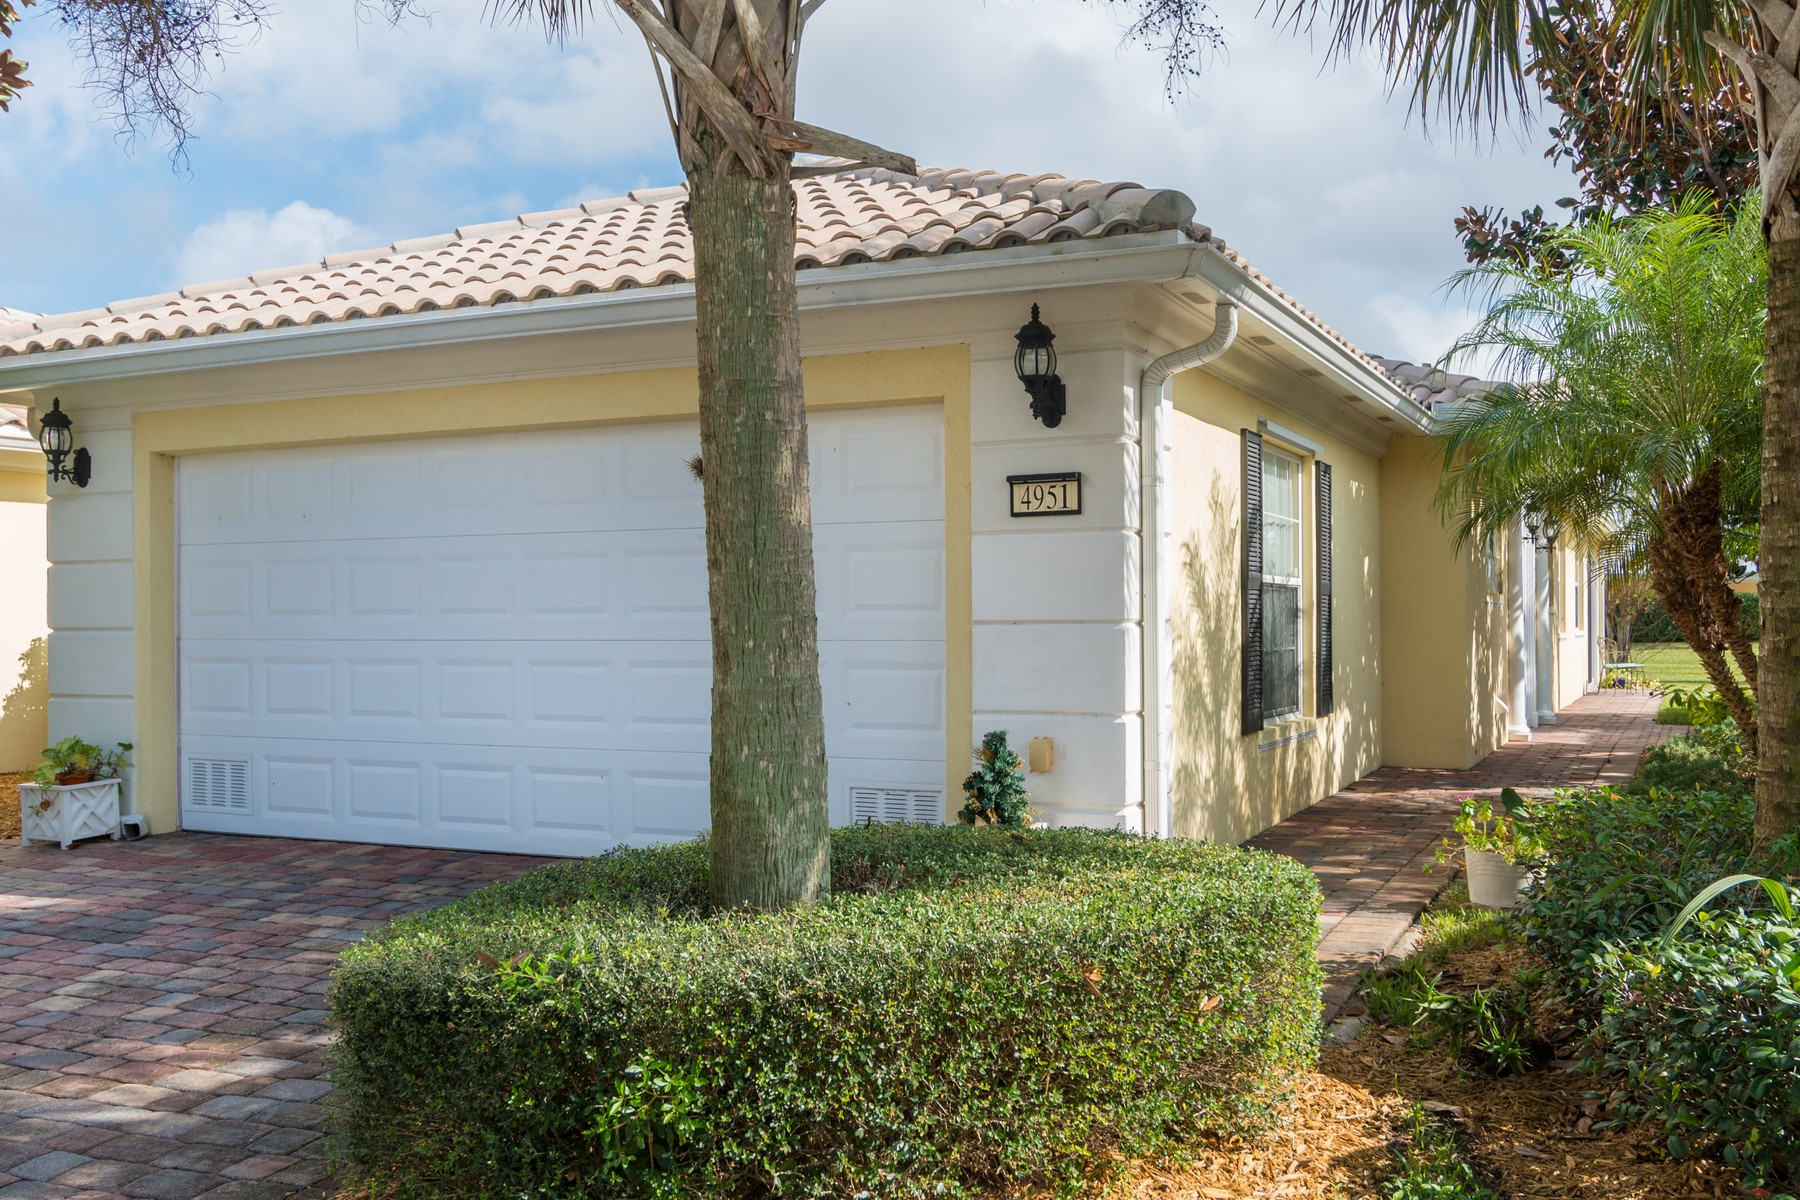 Single Family Home for Sale at Plush Home with 2 Suites 4951 Corsica Sq Vero Beach, Florida 32967 United States